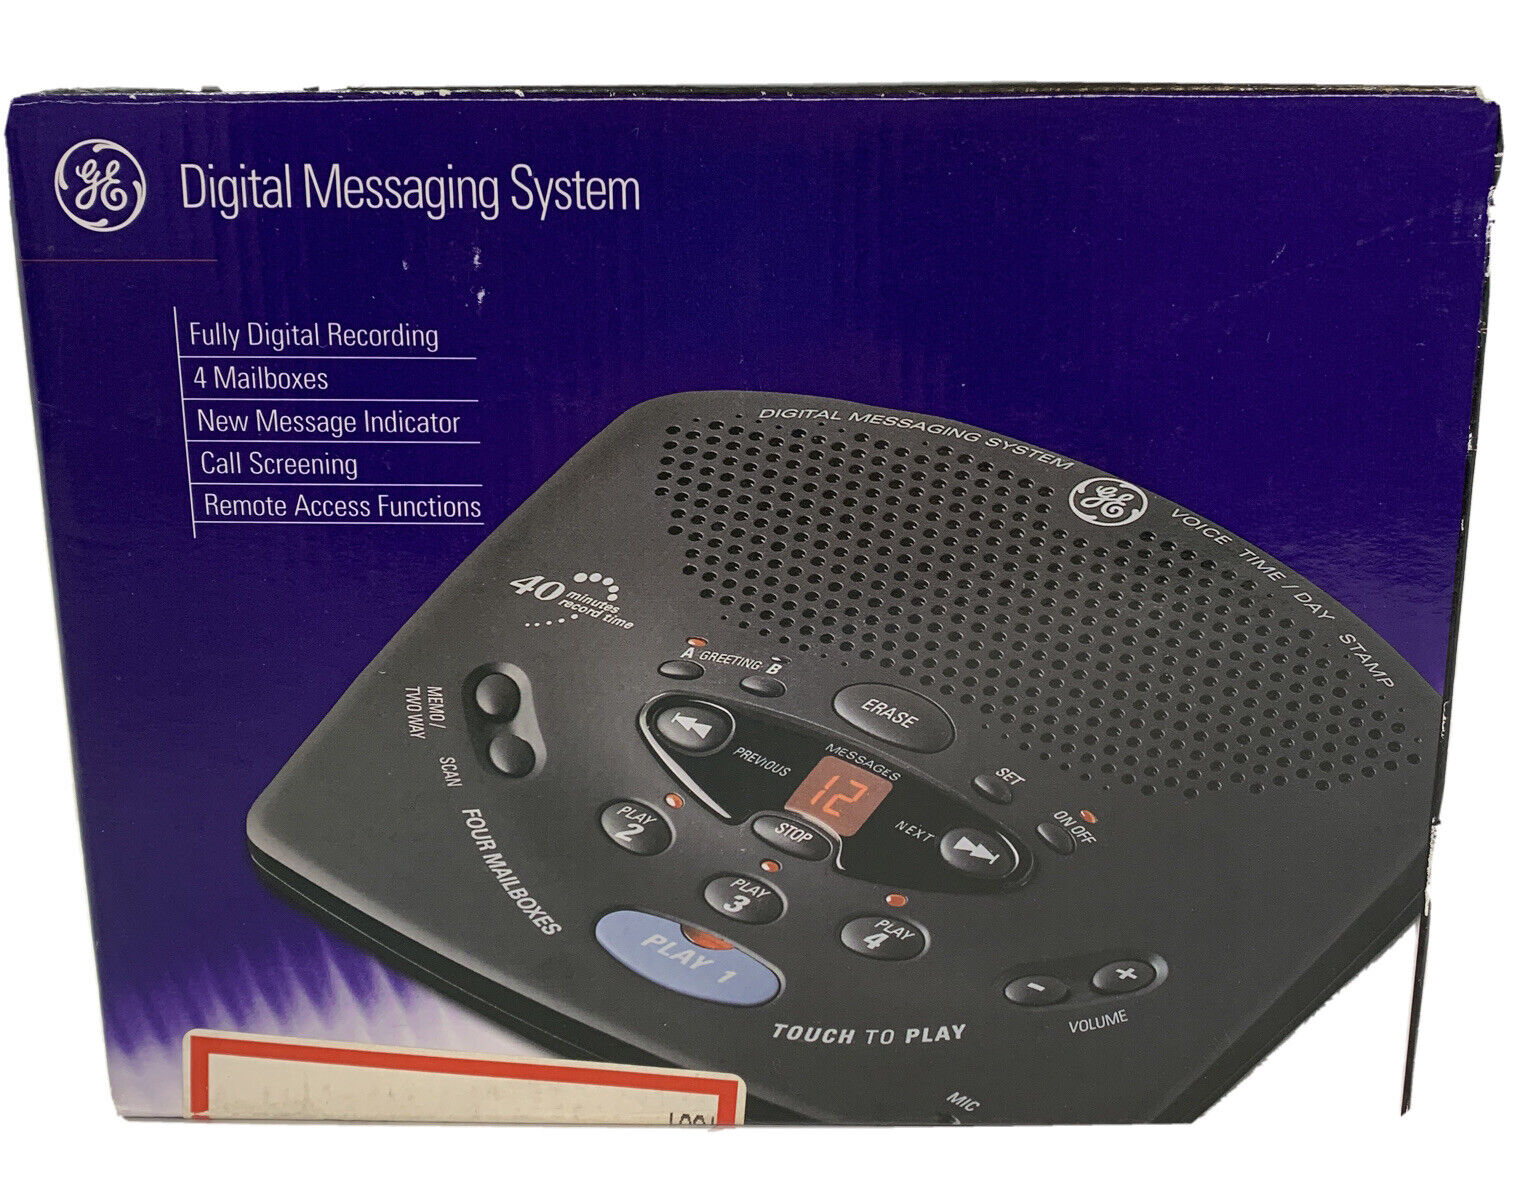 GE 29875GE2 Digital Messaging System with Voice Time and Day Stamp Renewed Black